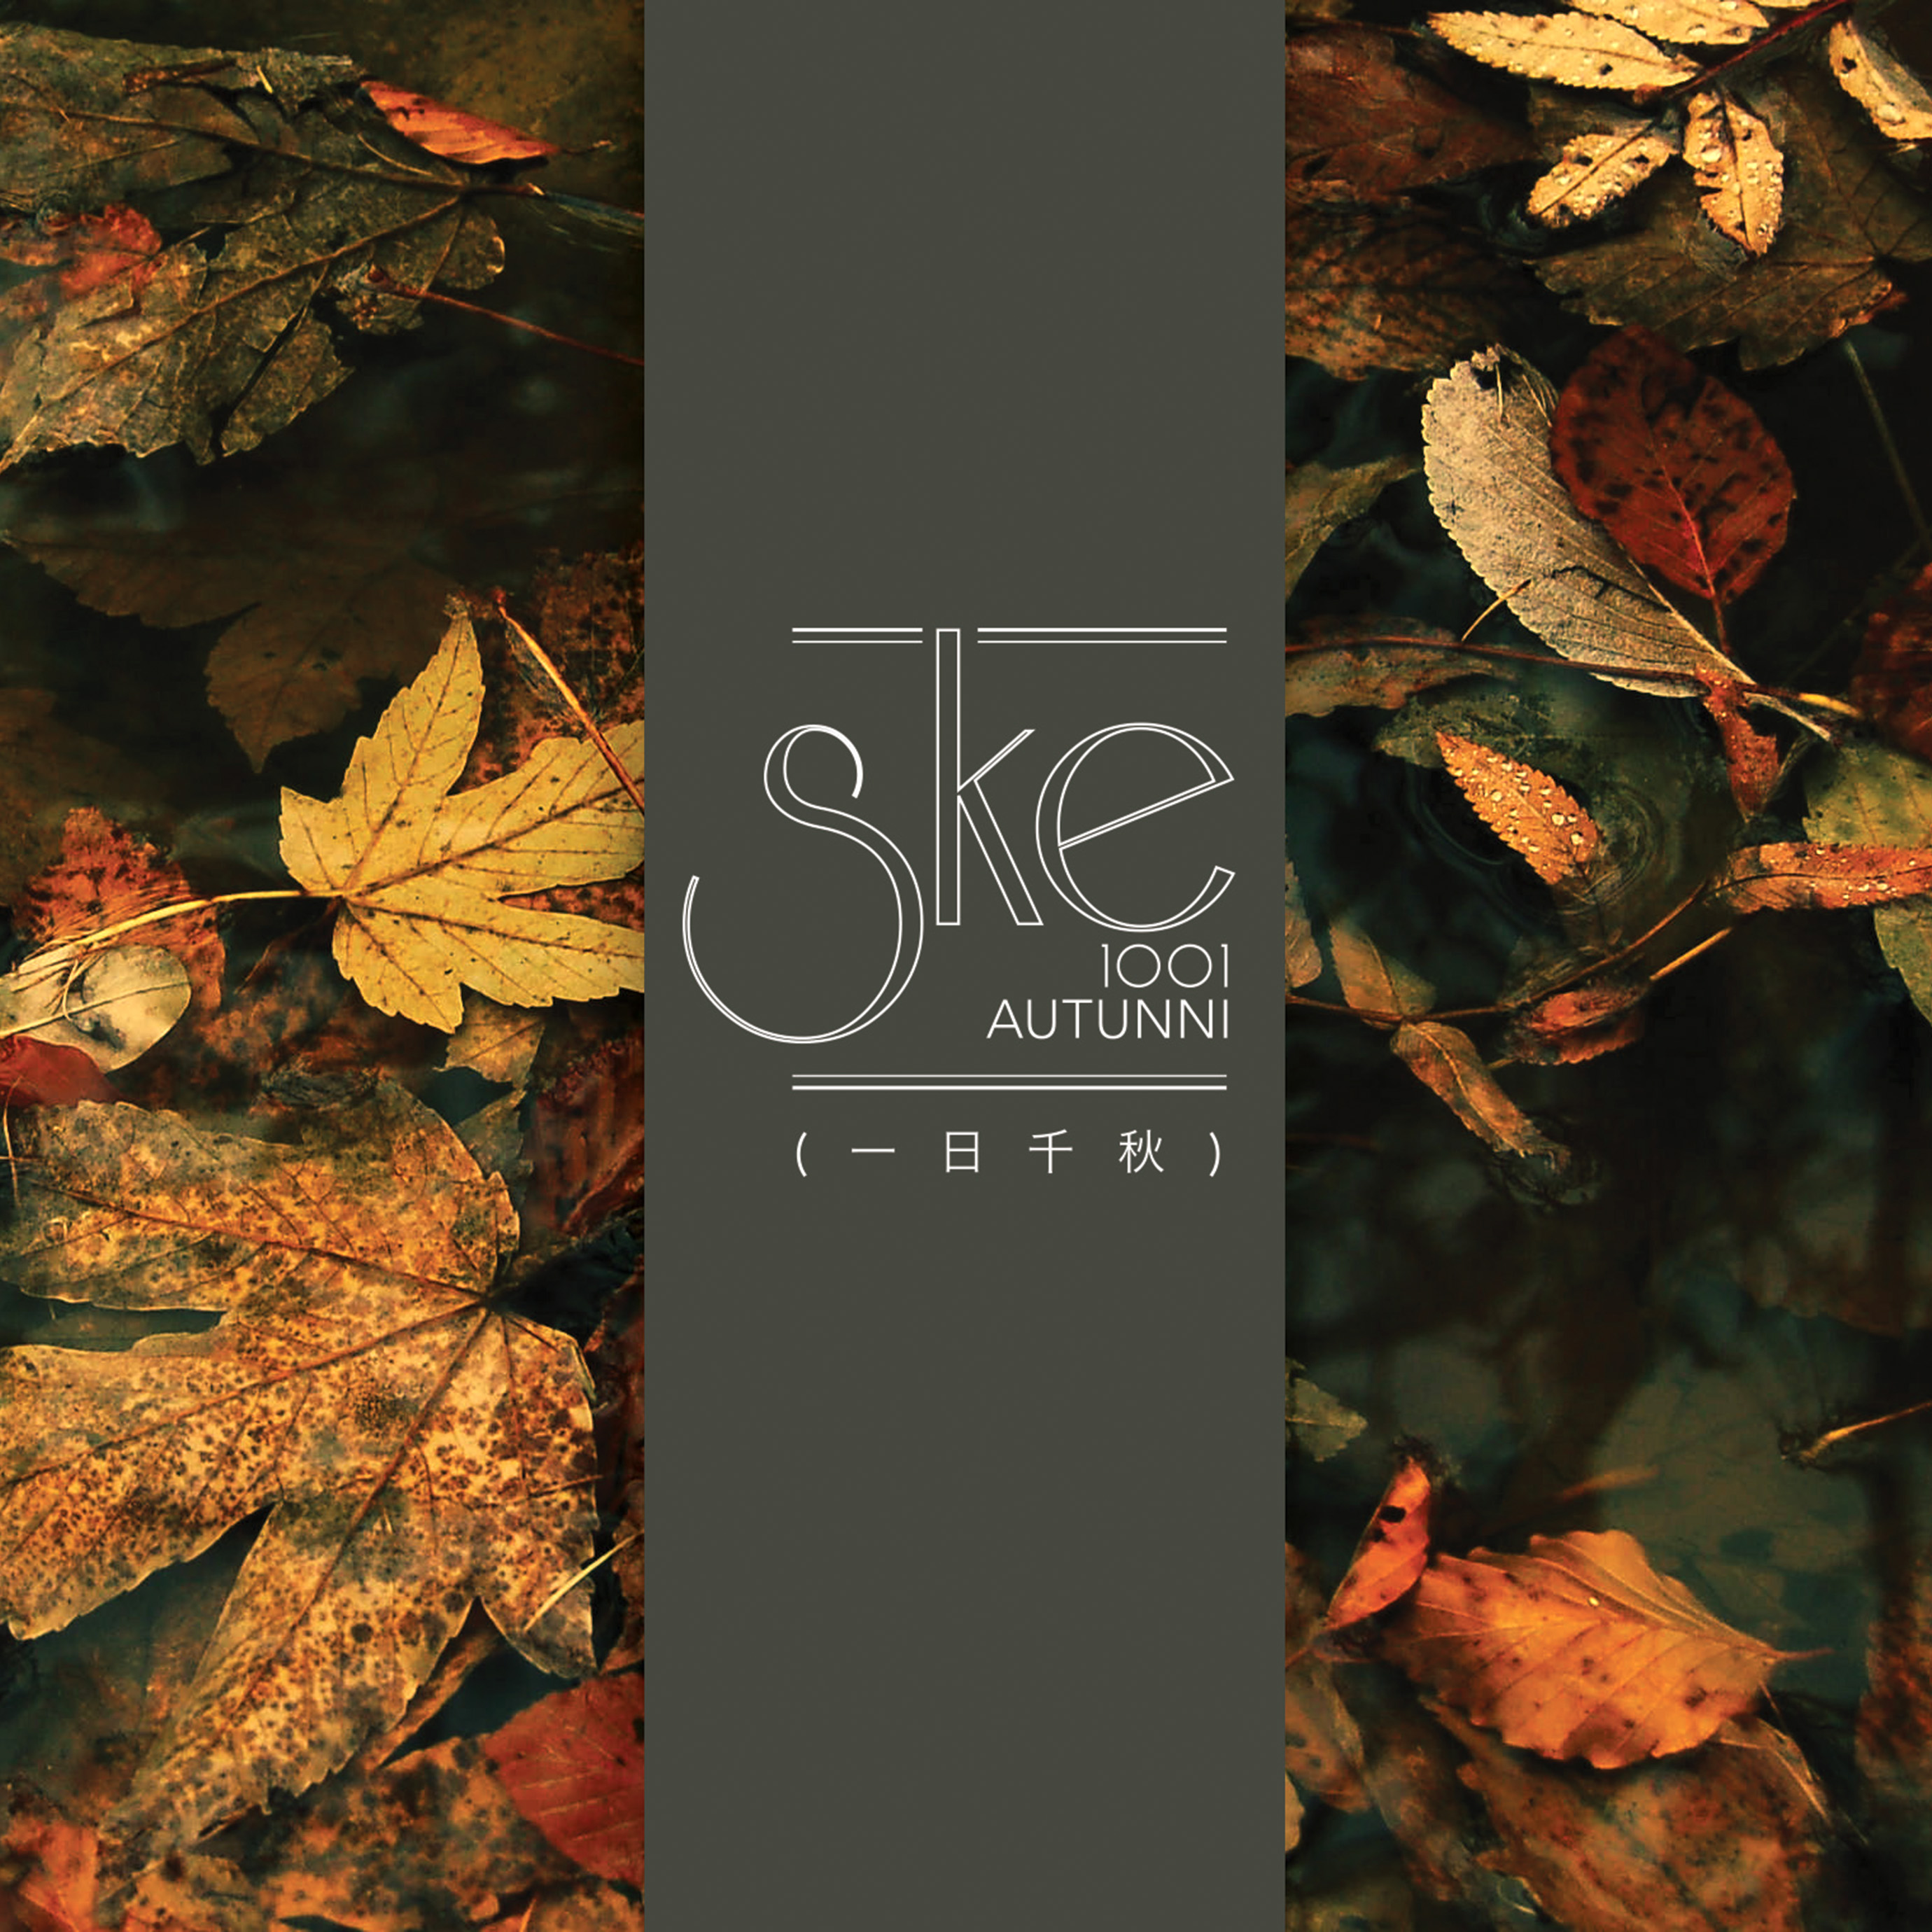 SKE - 1001 Autunni Remastered + Live  2CD Digipack